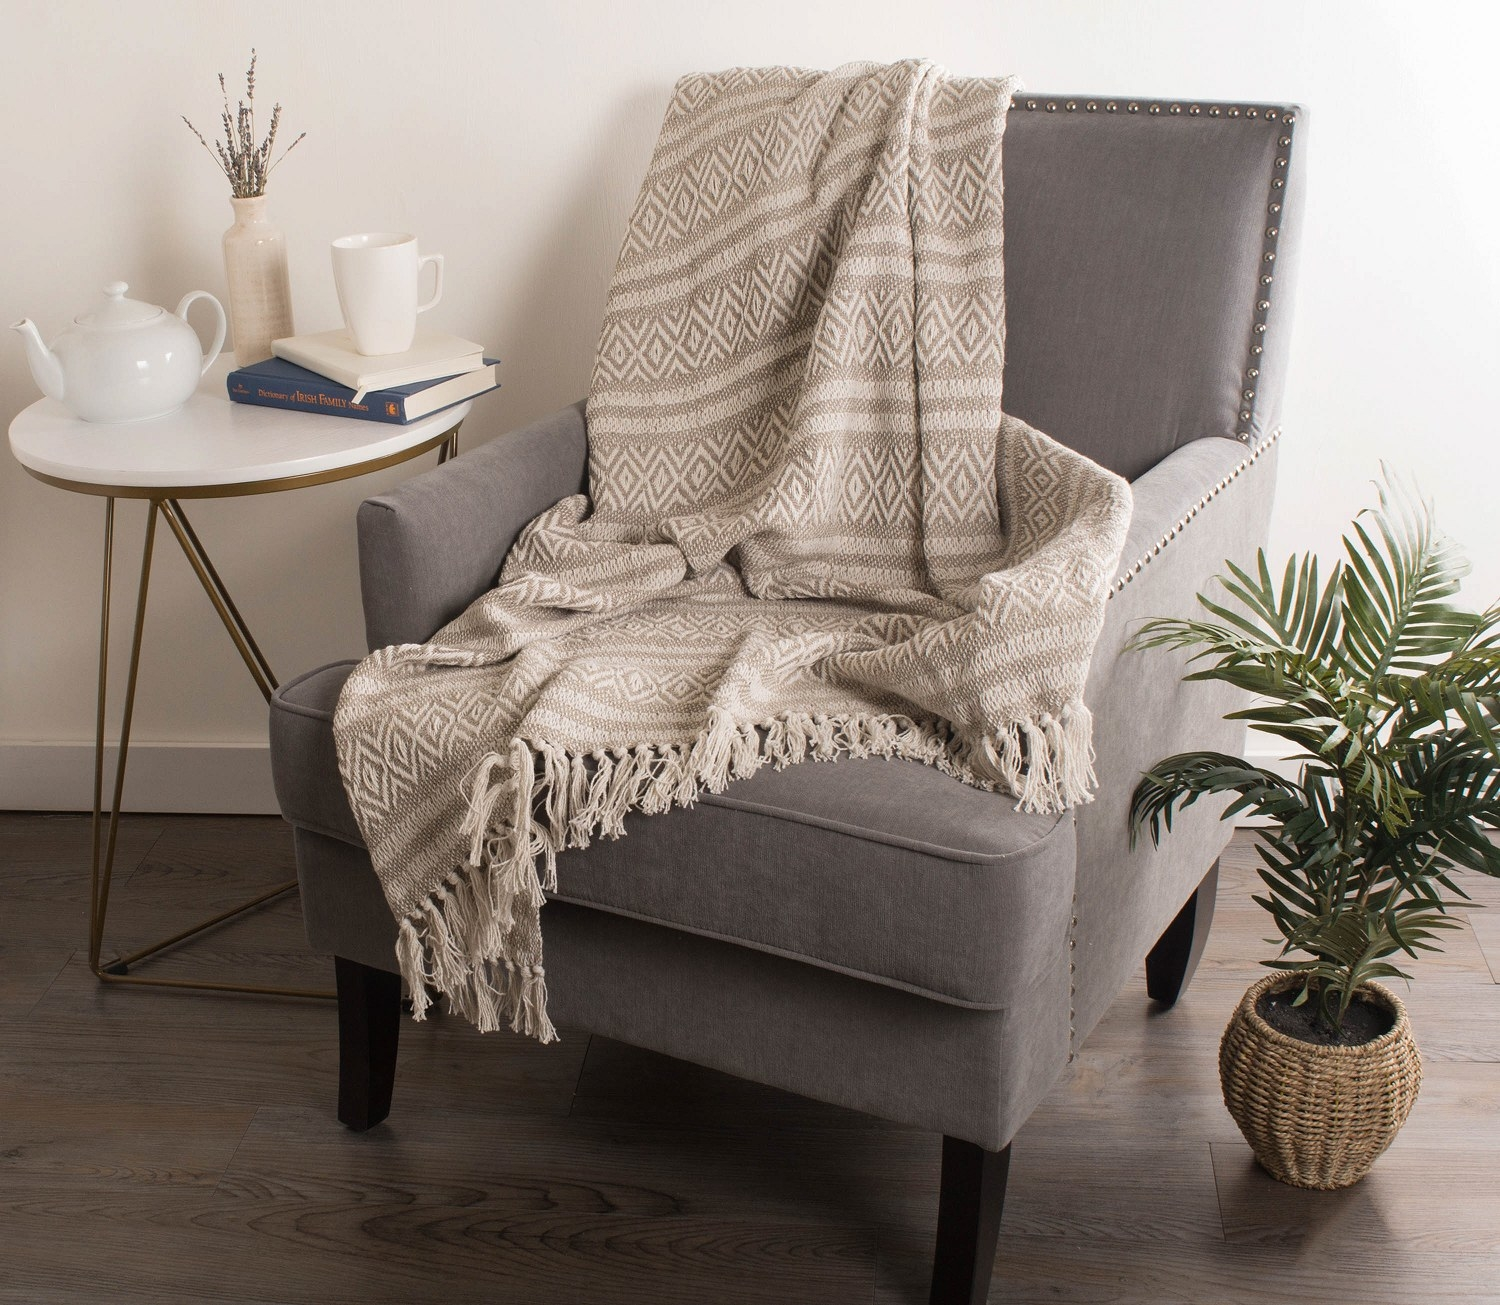 The blanket draped over an accent chair